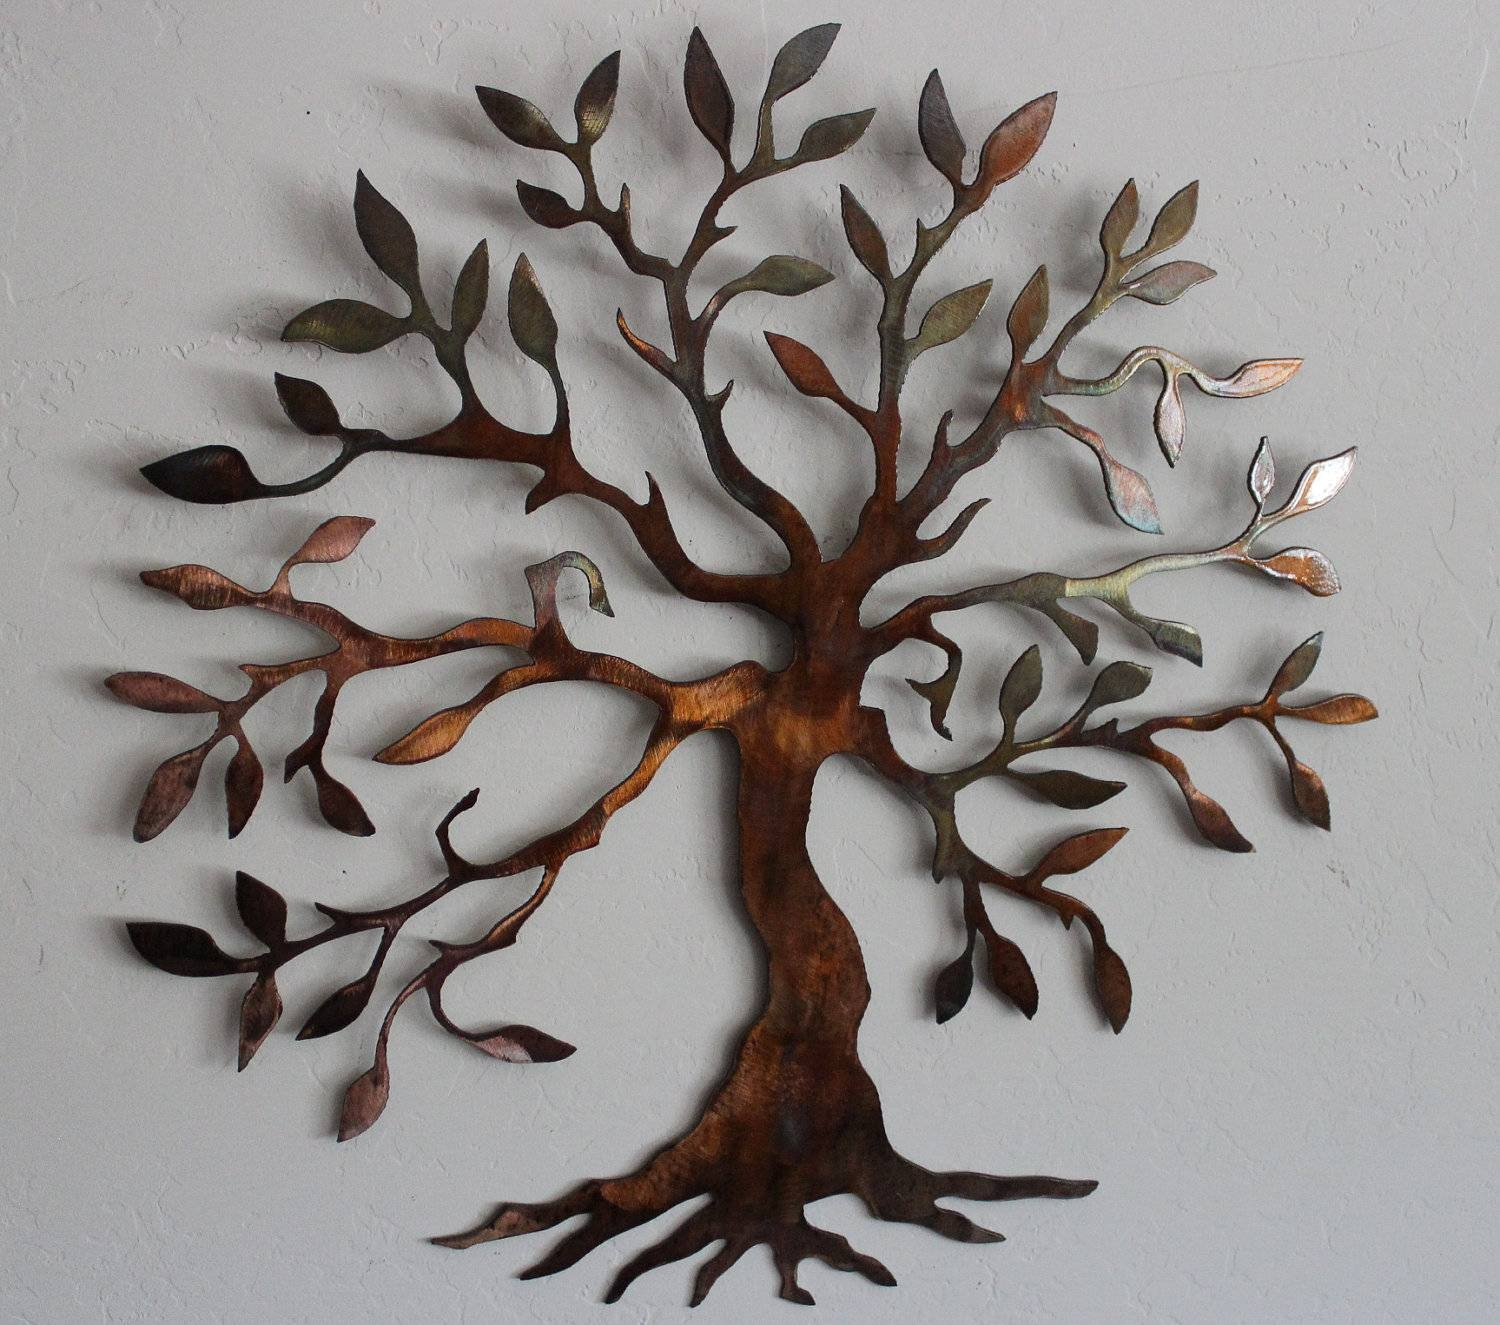 Charming Tree Metal Wall Art Decor Sculpture Design~ Popular Home Inside Most Popular Small Metal Wall Art Decor (View 3 of 20)